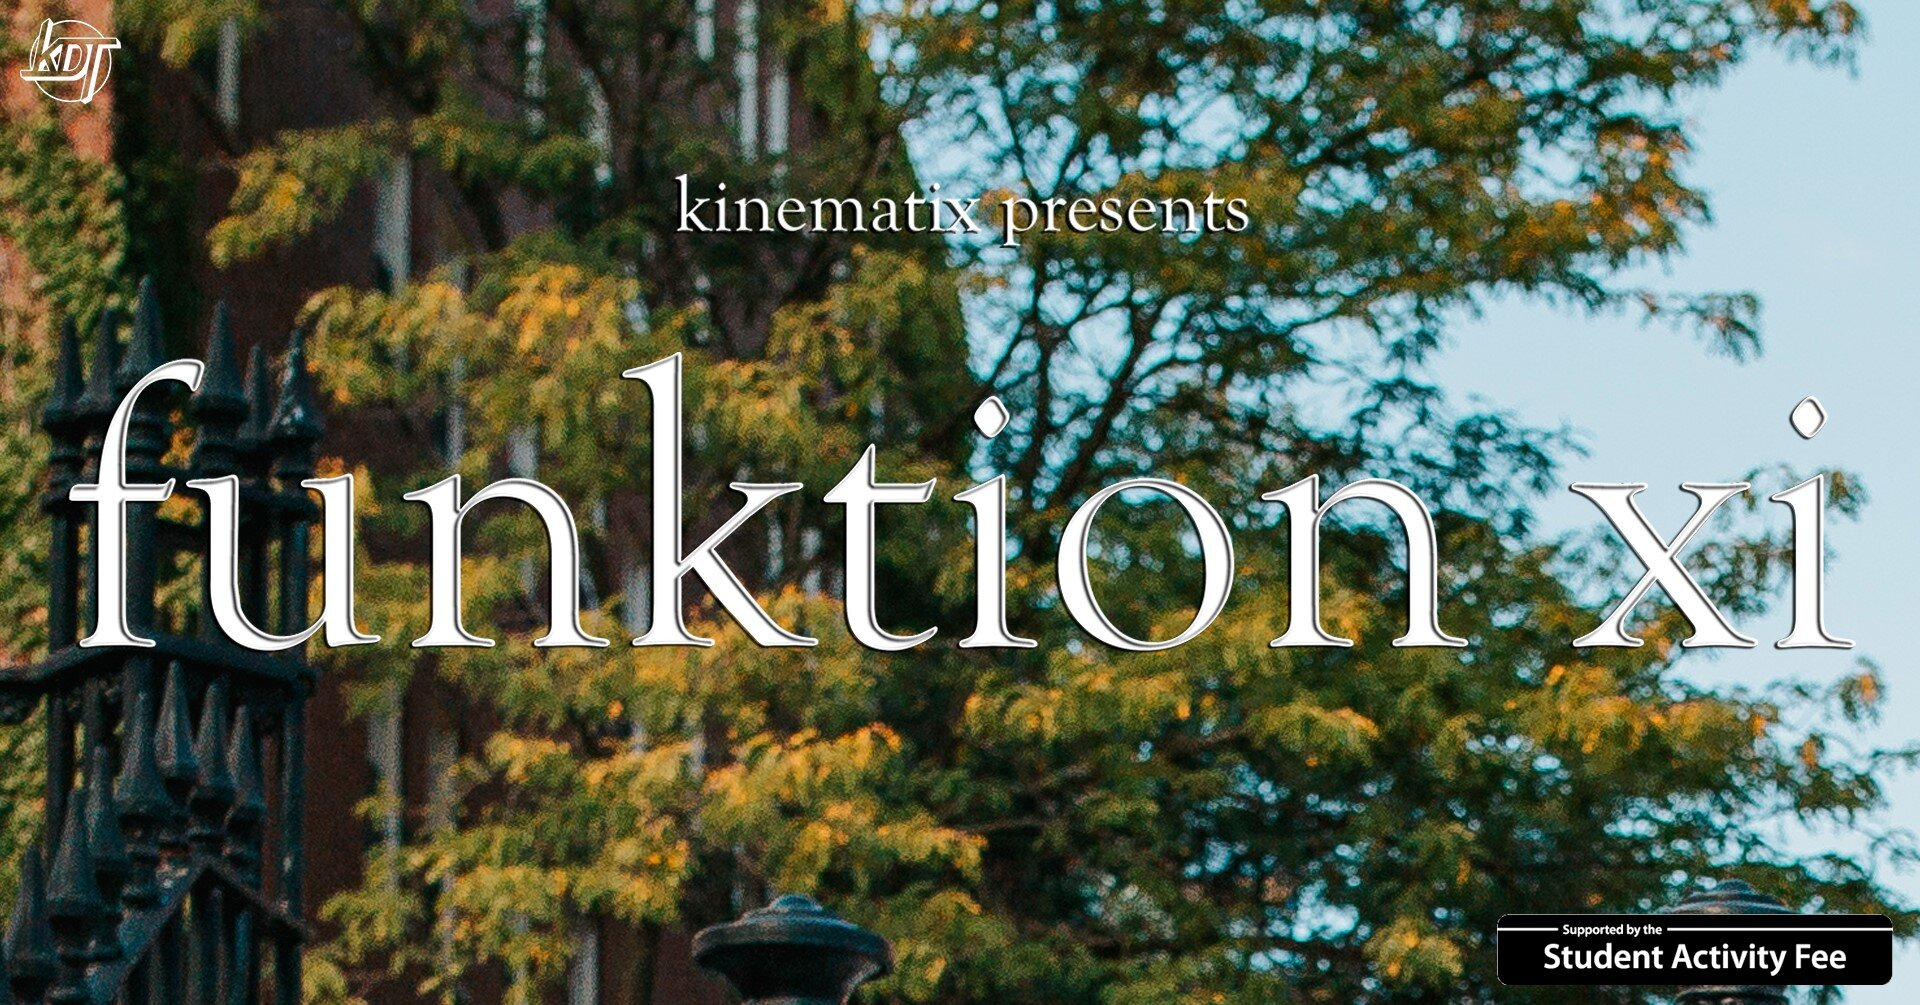 Funk'tion XI 2019 - Saturday, November 9th, 7PMNortheastern's biggest night of urban dance is back! FUNK'TION XI will feature some of the best dance crews in Boston, in the NY/NJ area, and an incredible lineup for headliners this year.